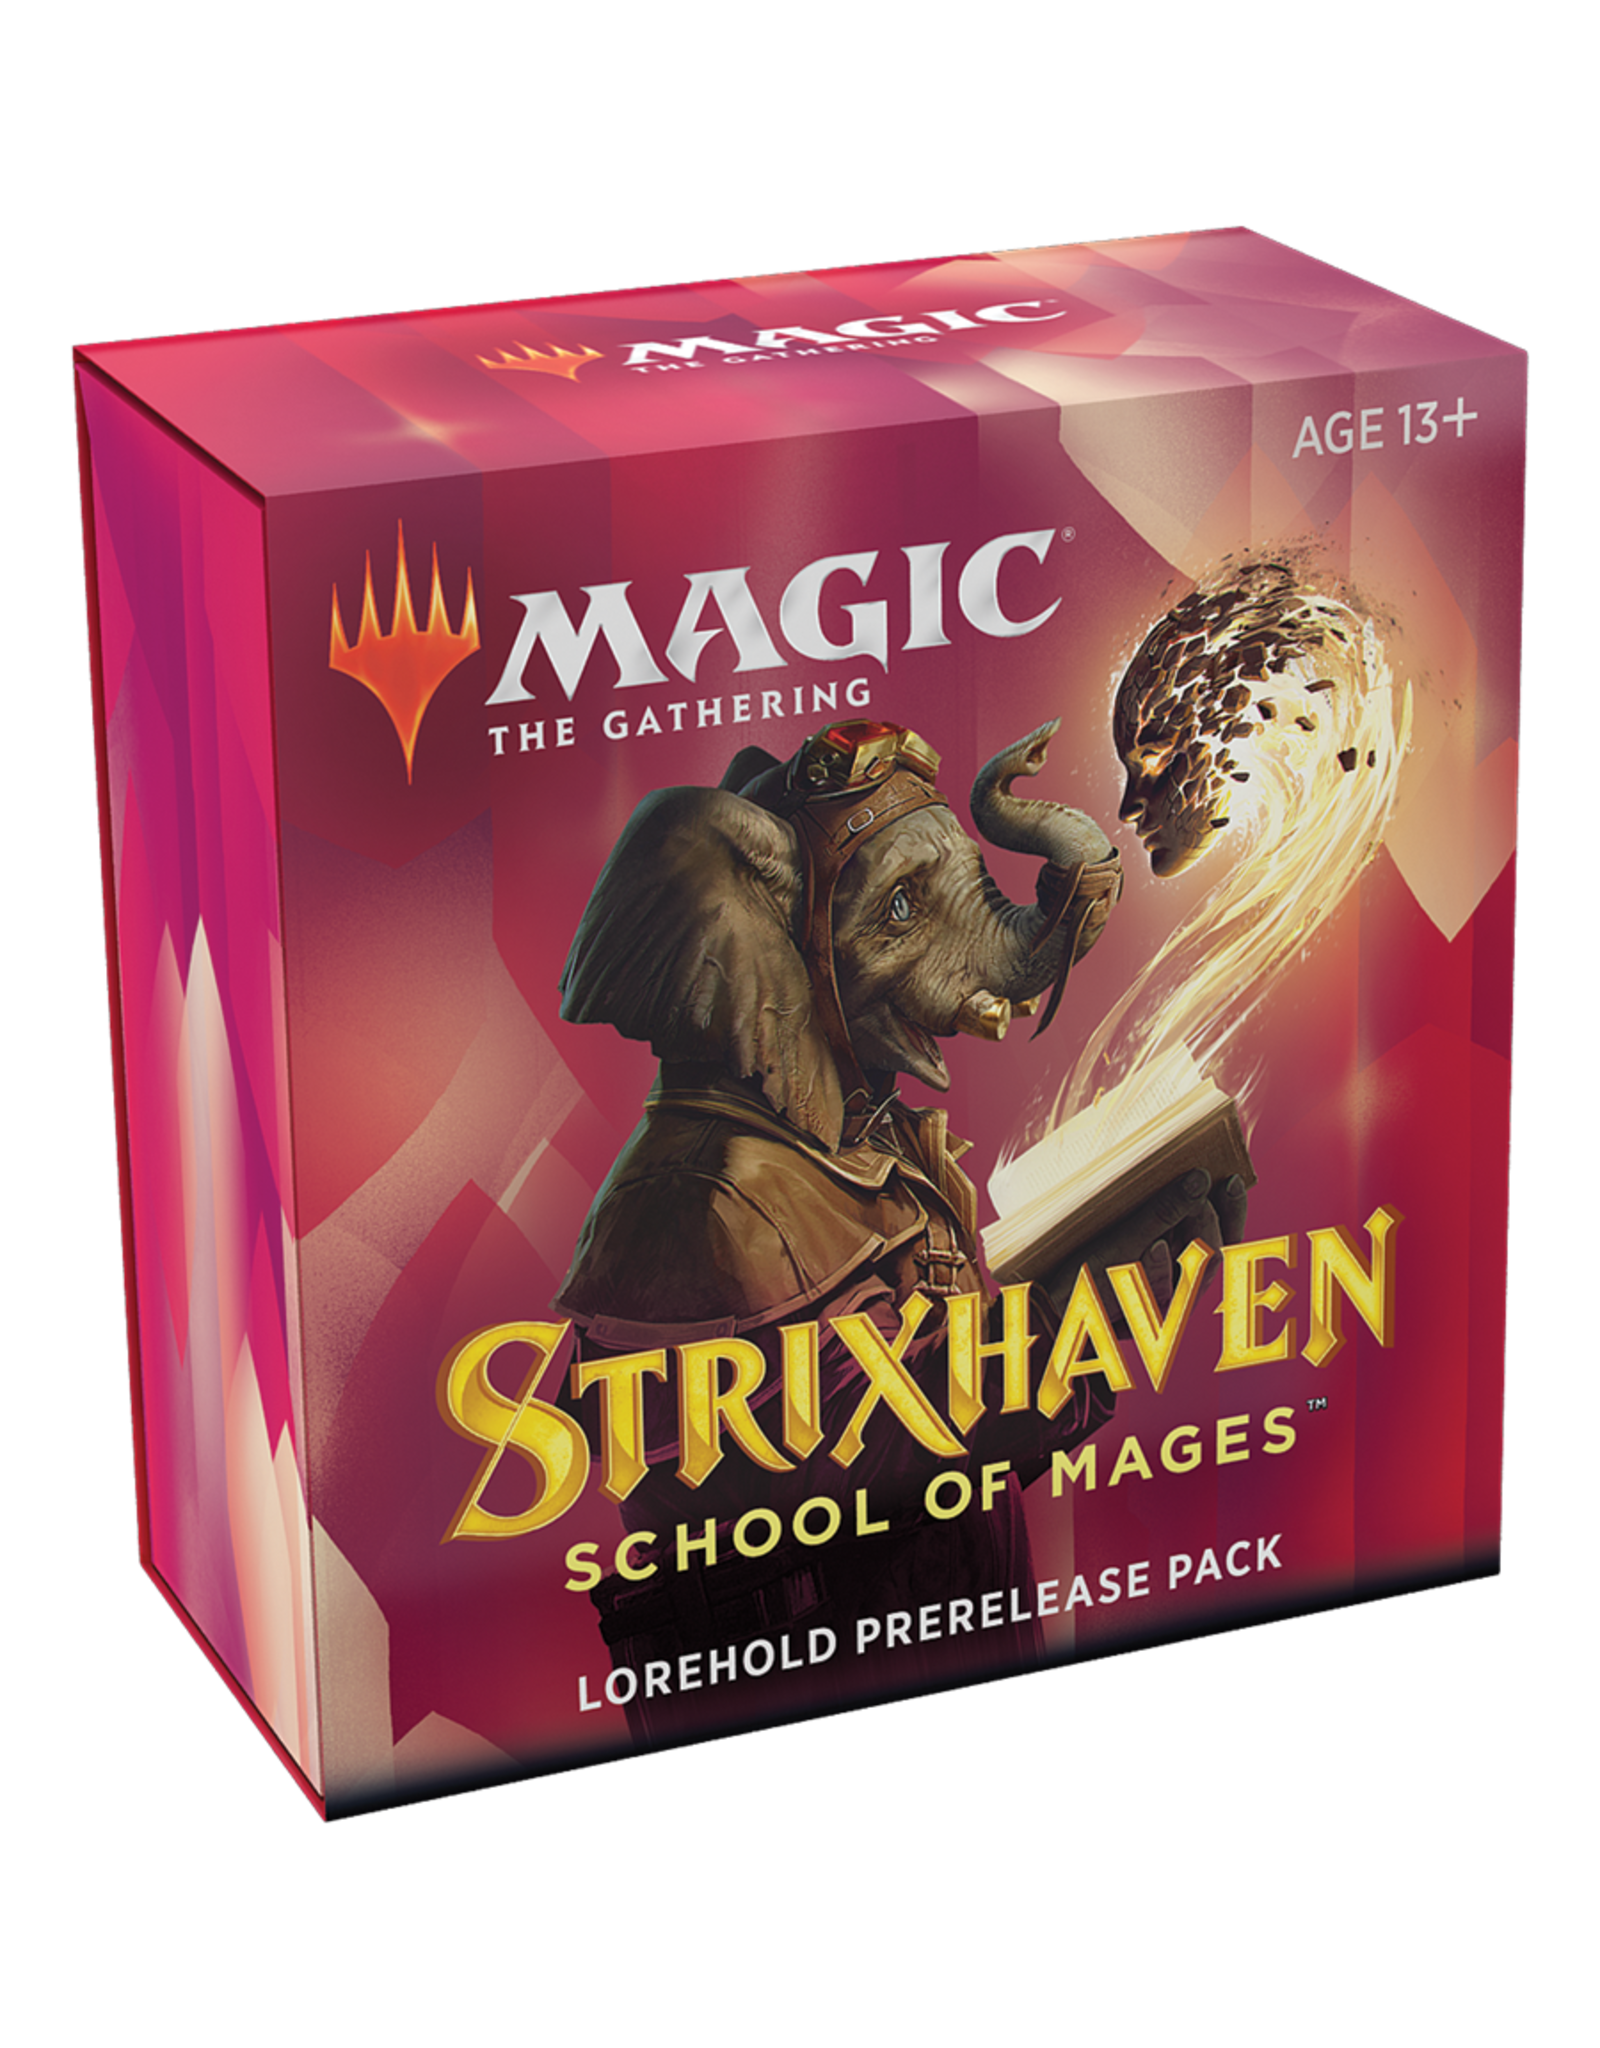 Strixhaven Prerelease Pack -  Lorehold